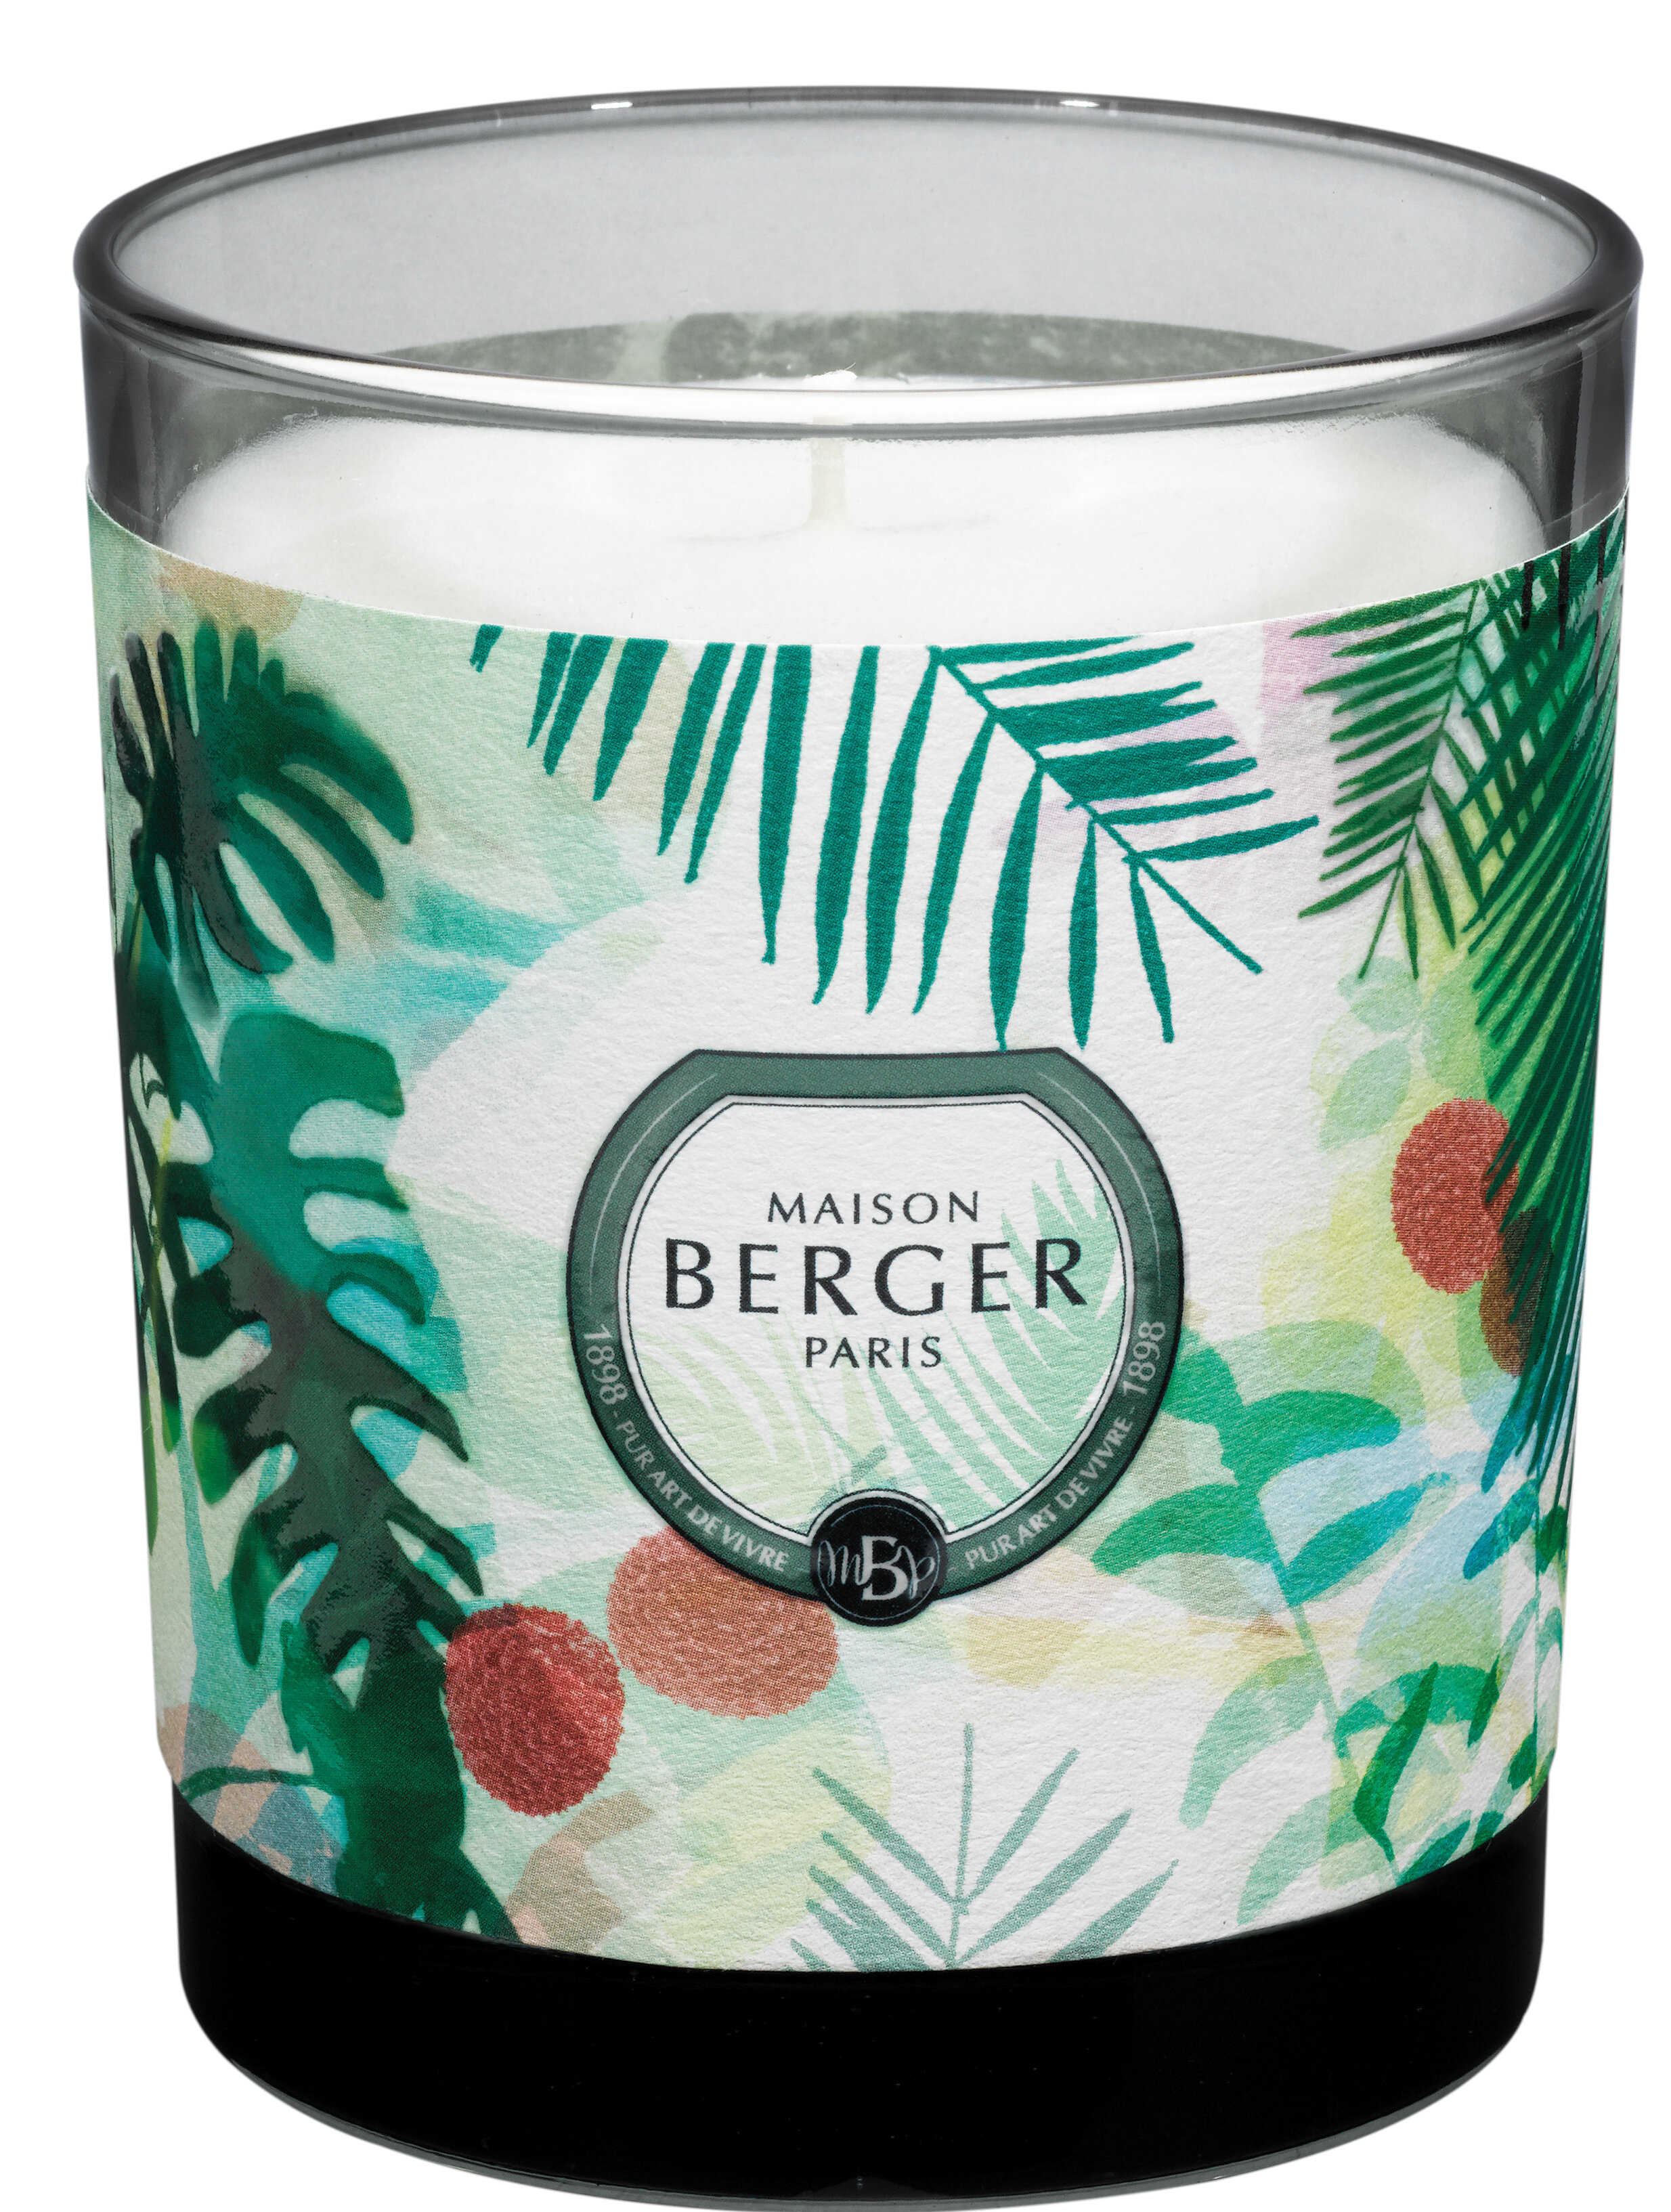 Maison Berger Candles You Ll Love In 2021 Wayfair